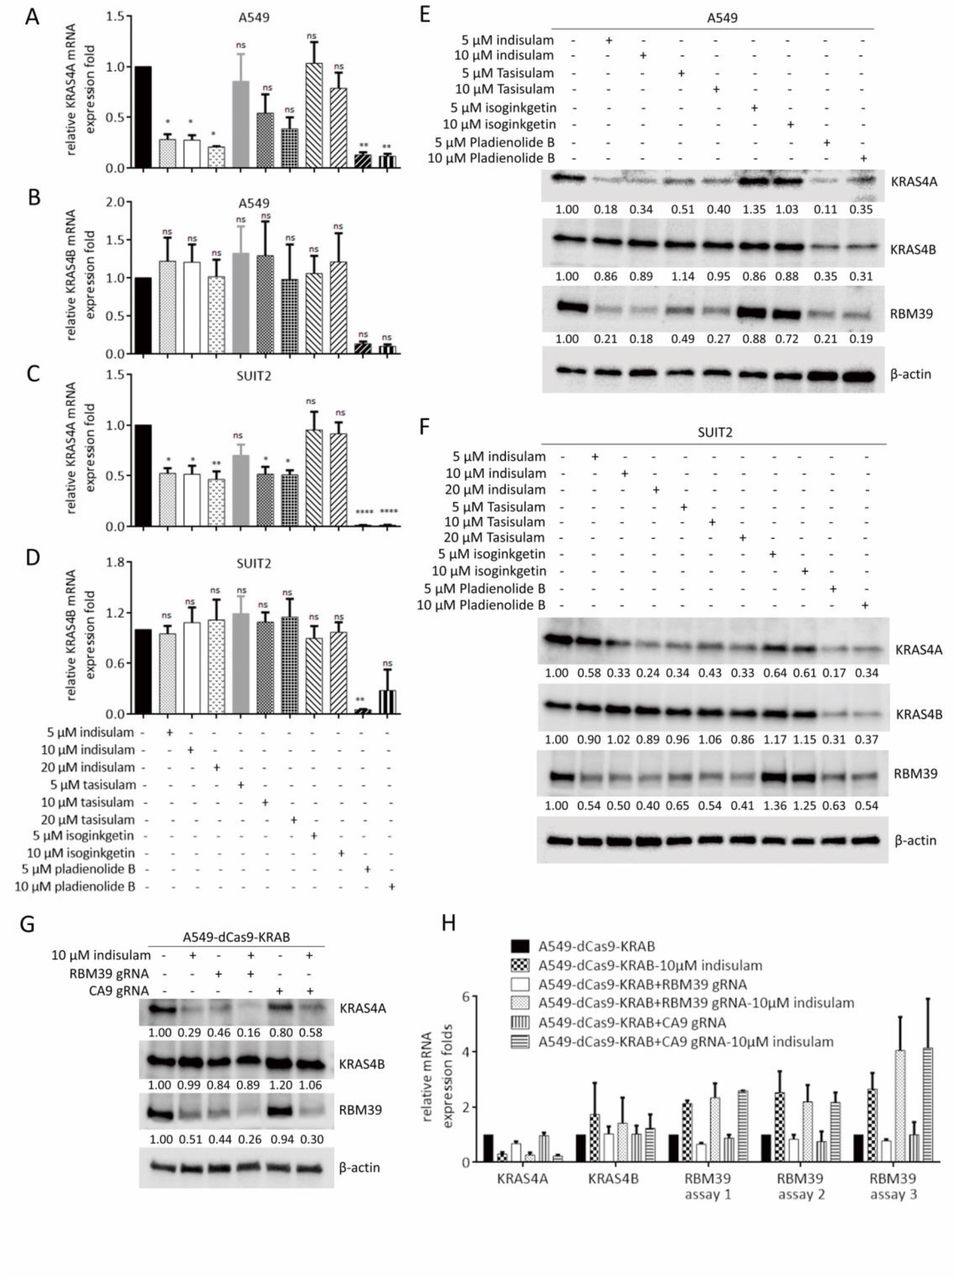 Regulation of KRAS4A/B splicing in cancer stem cells by the